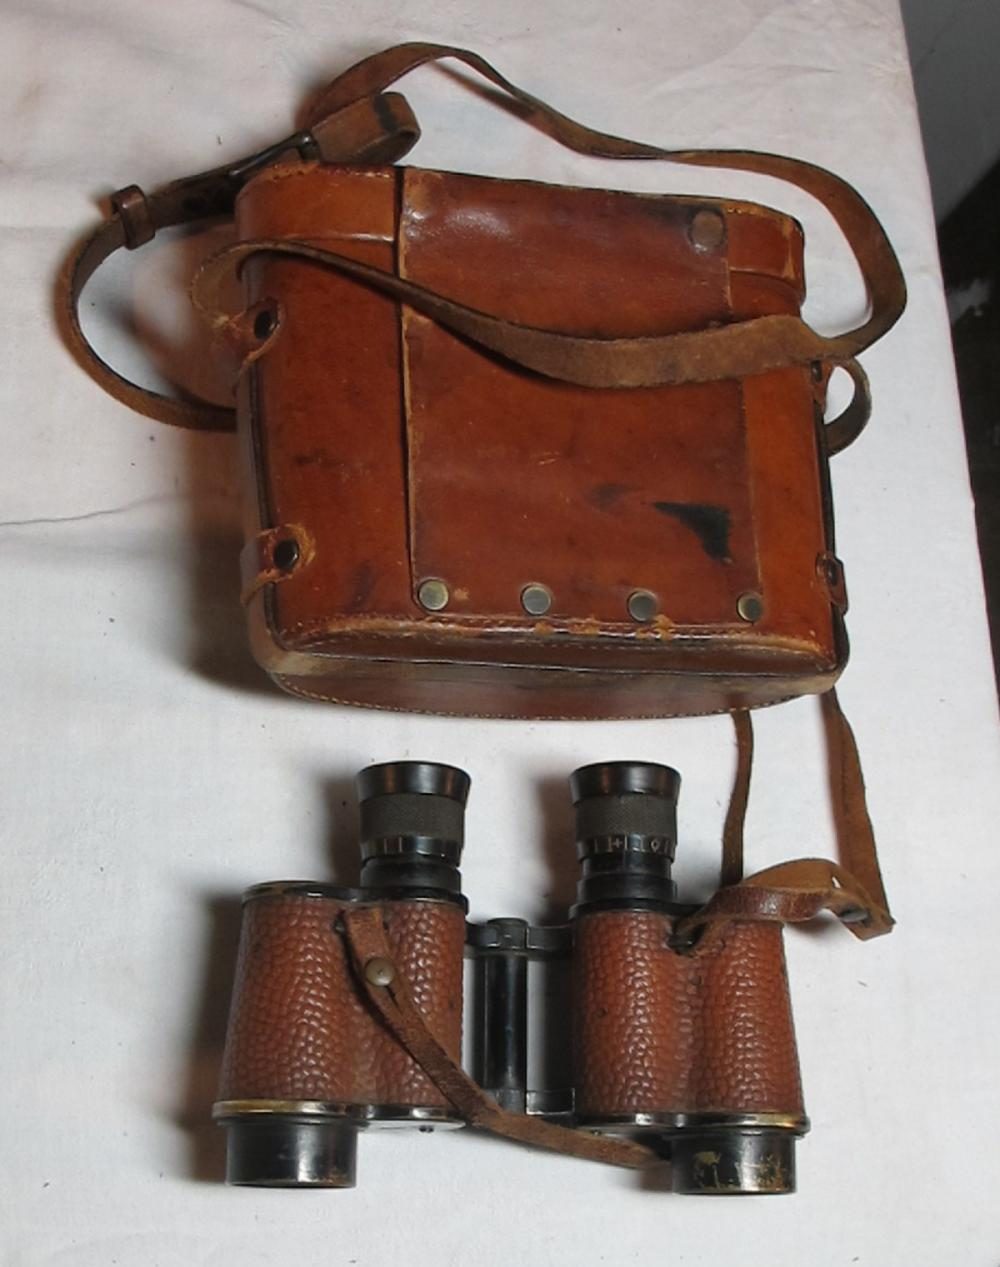 Lot 92: WWII US ARMY SIGNAL CORPS TALBOT REEL CO. 6 X 30 BINOCULARS W/COMPASS TOP CASE